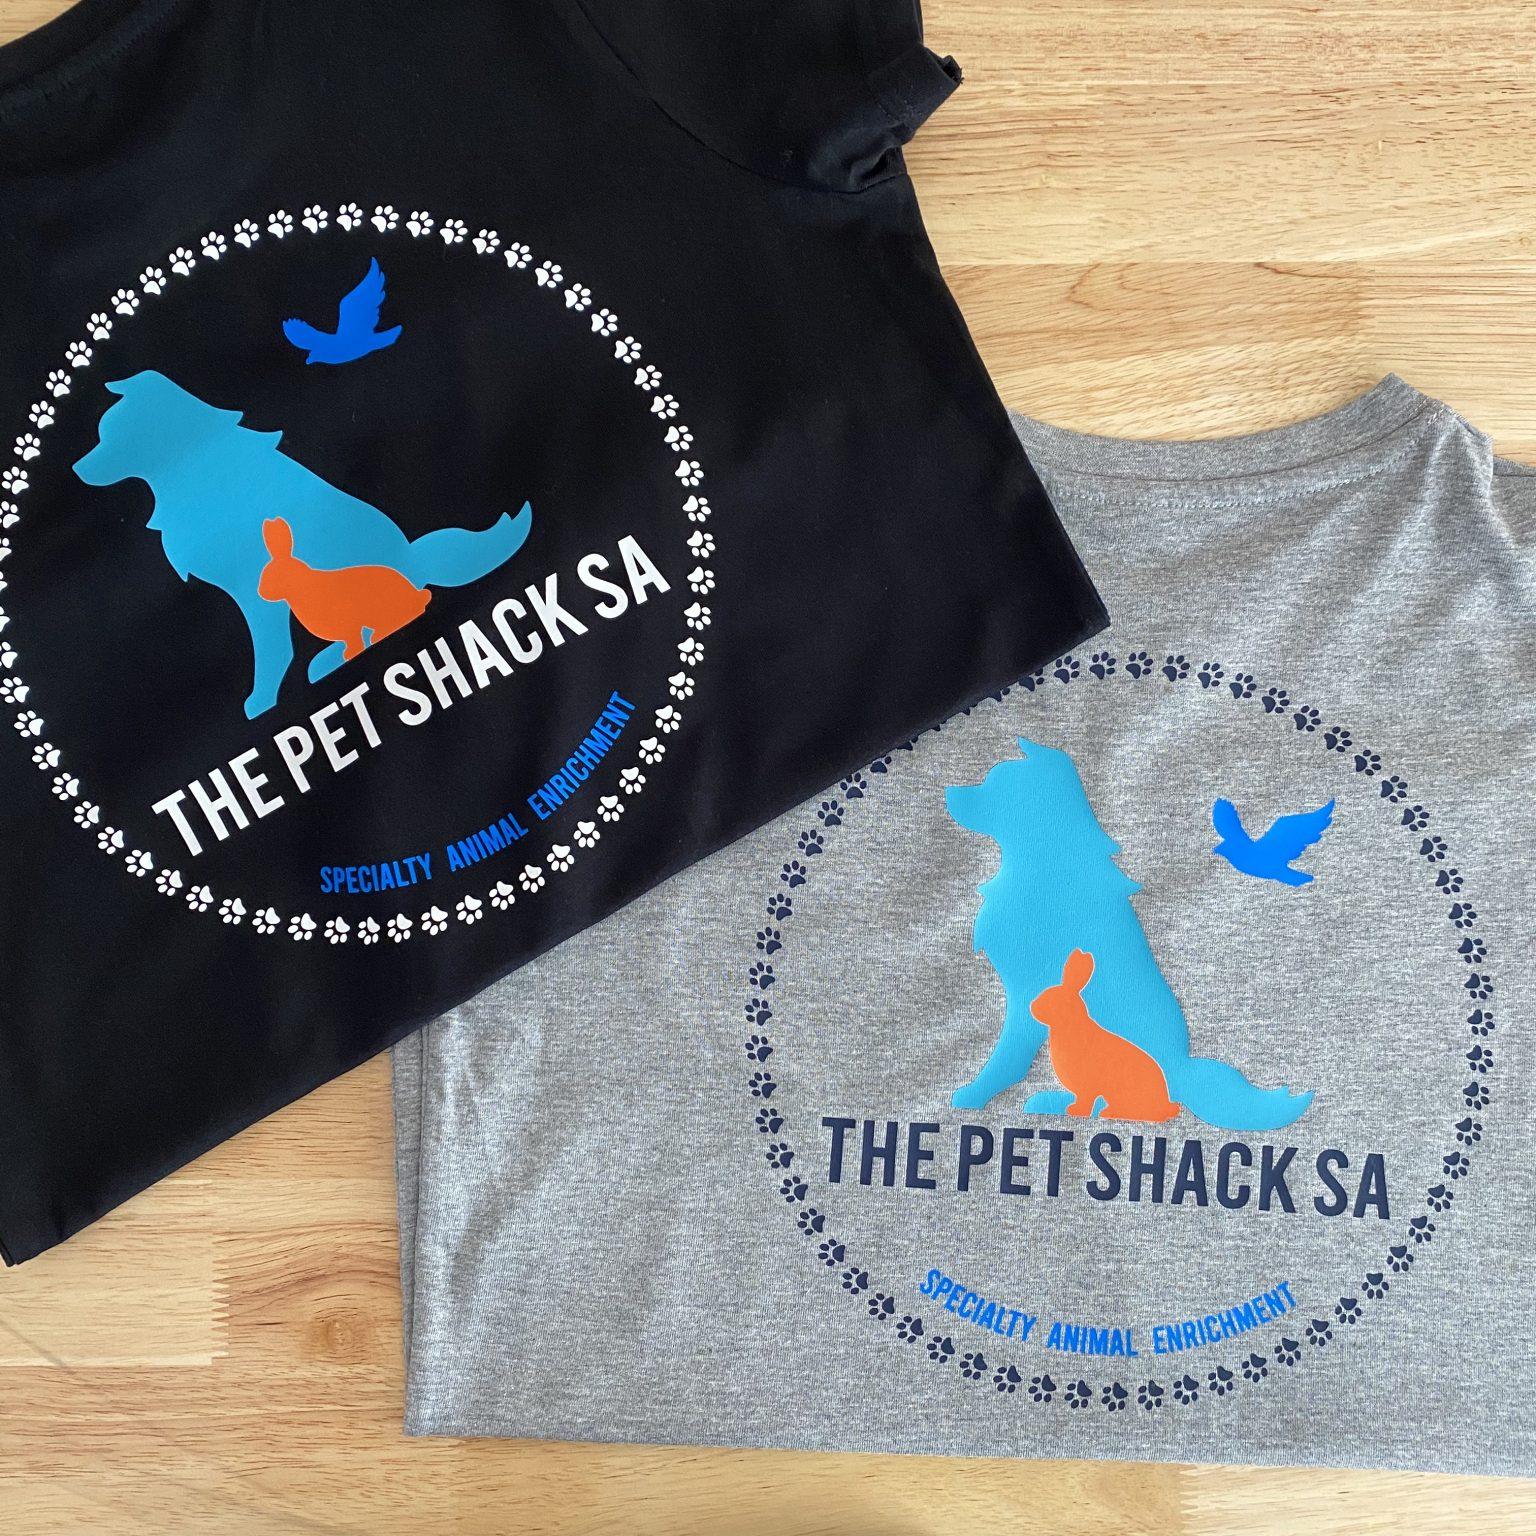 Branded Tees for Small Business